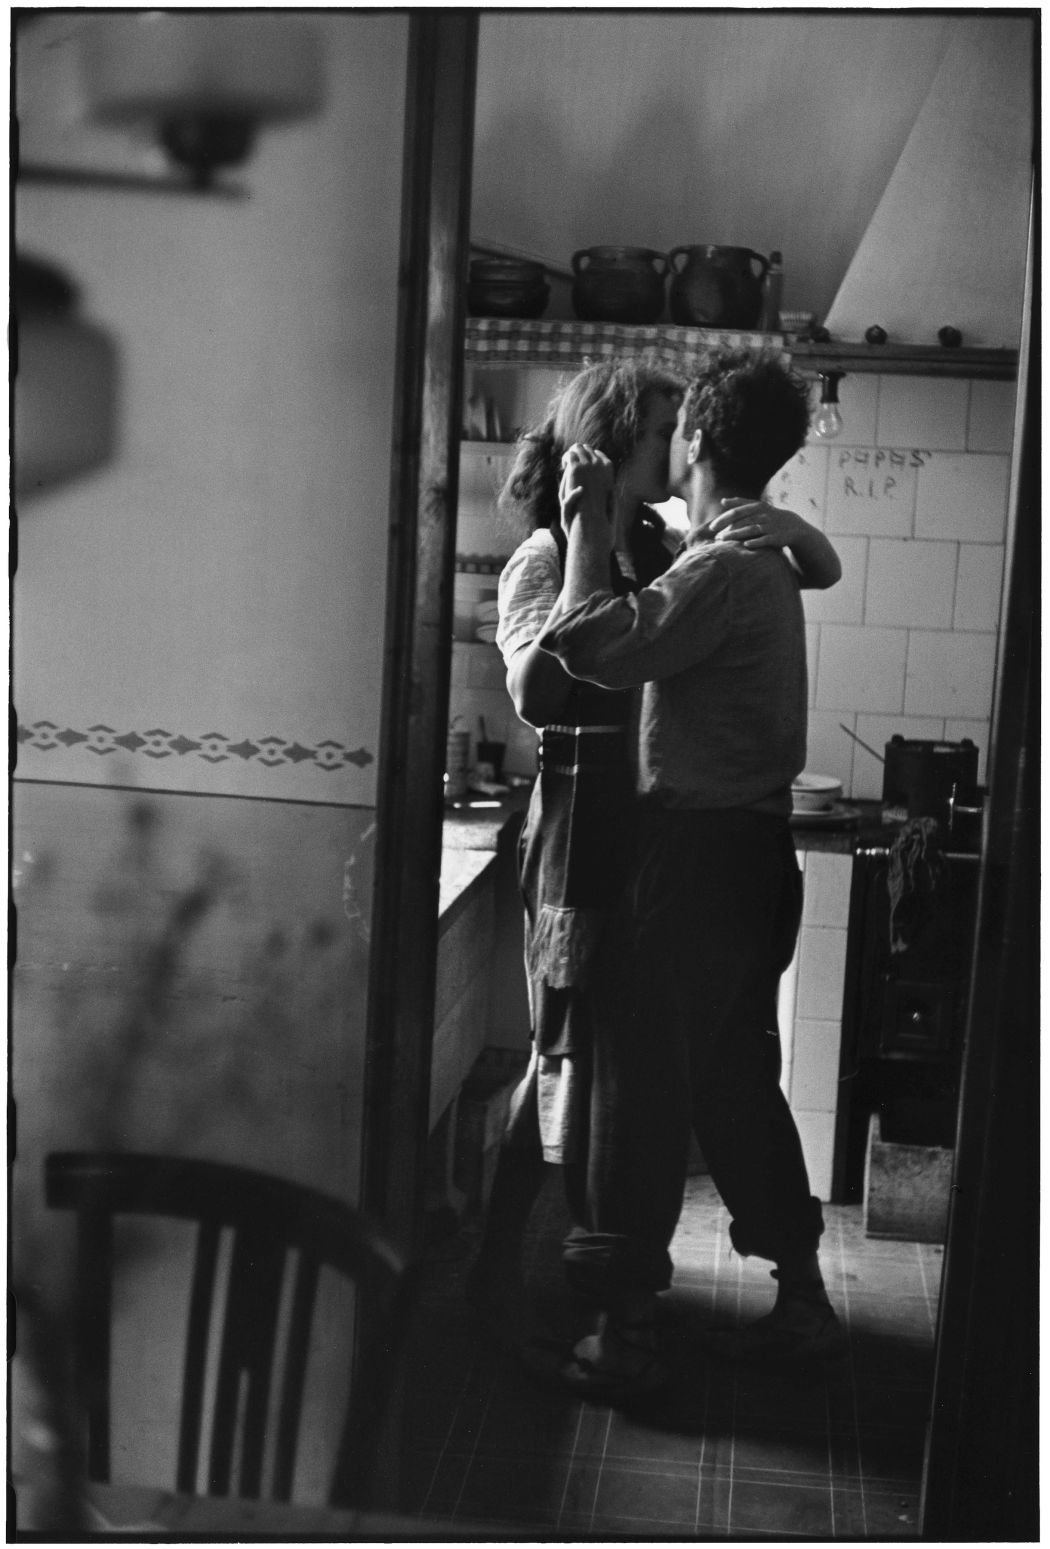 Elliott-Erwitt-Double-Platinum-04